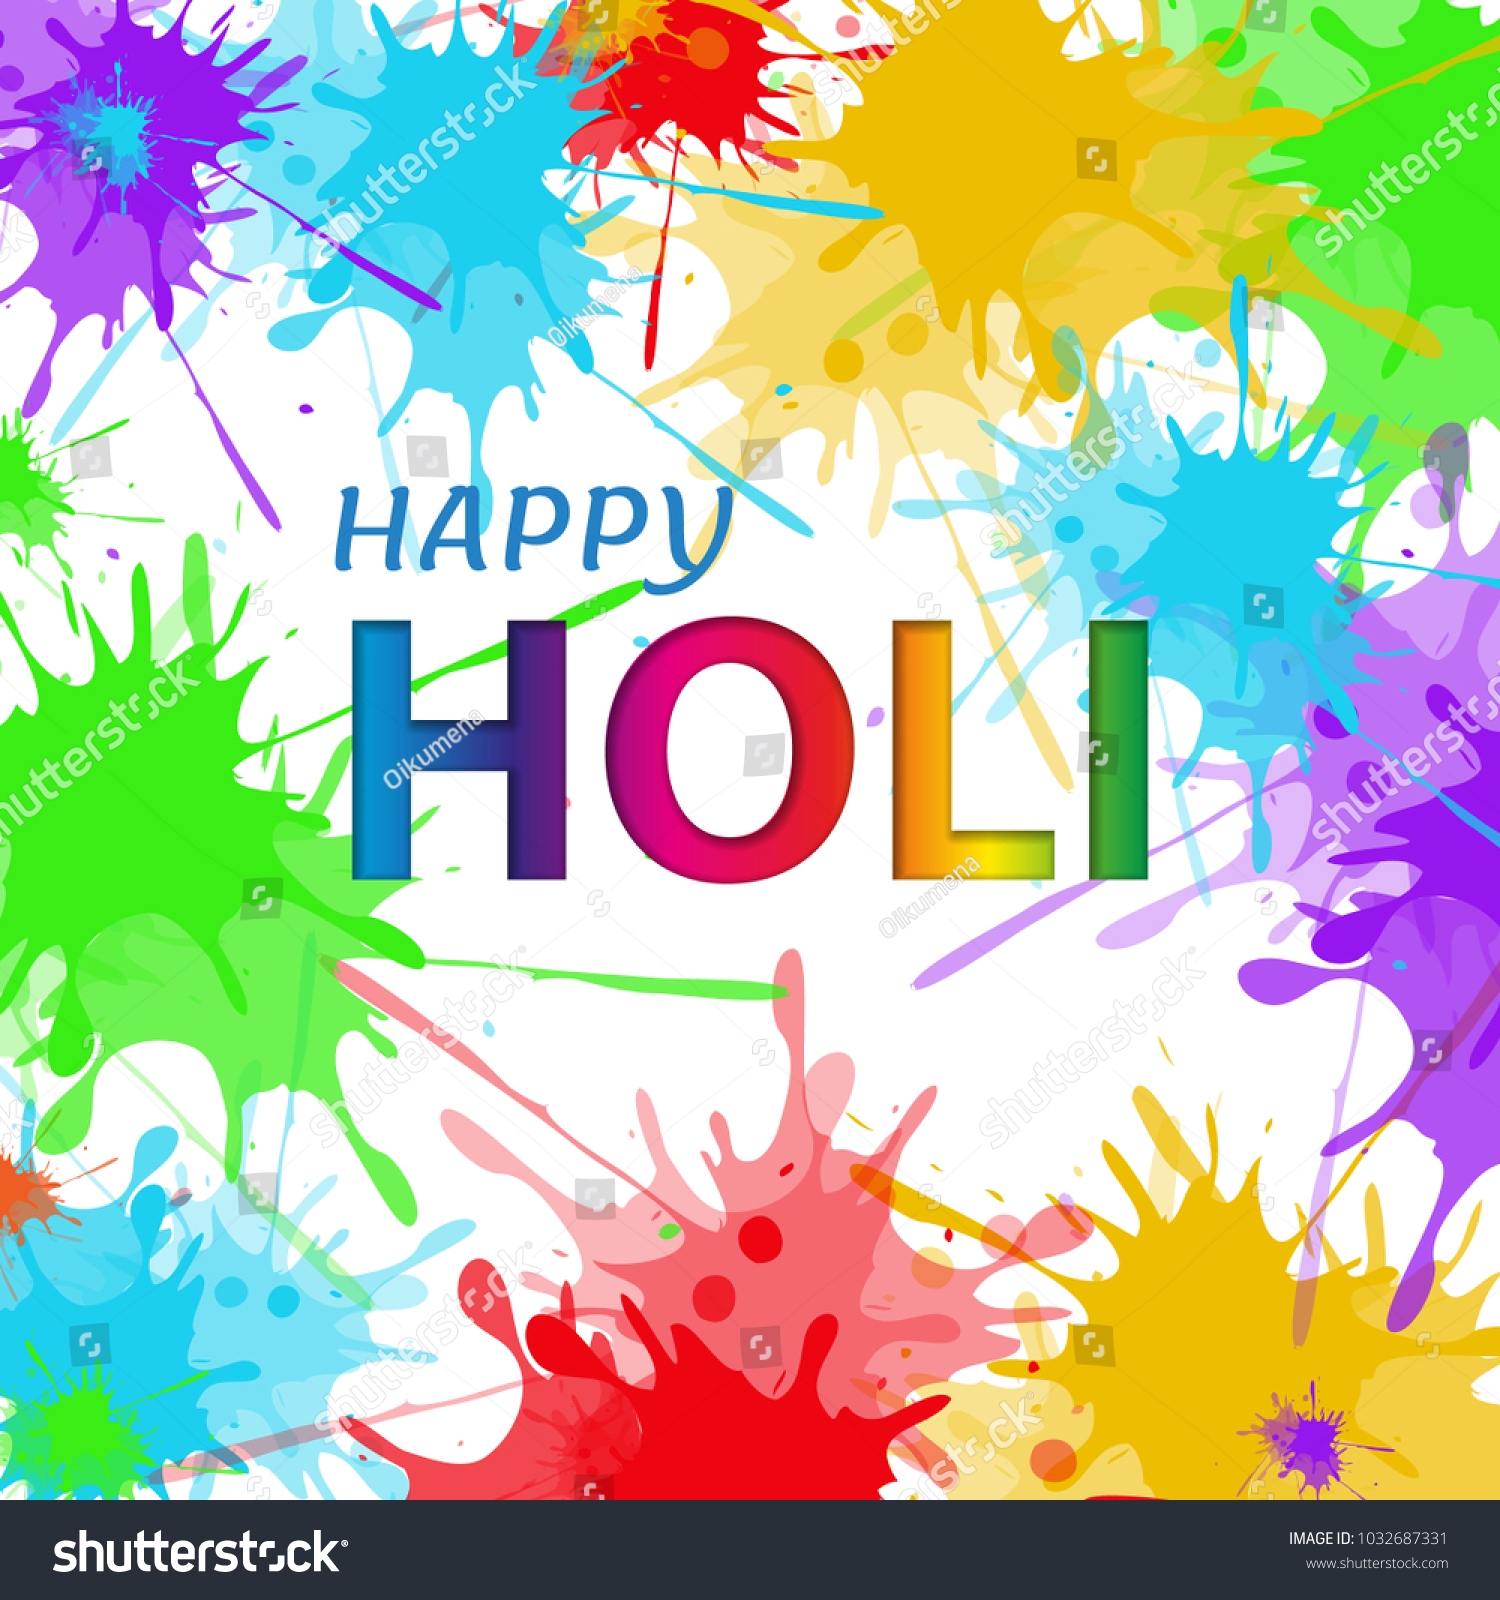 Happy holi spring festival greeting flowers stock vector 1032687331 happy holi spring festival greeting flowers vector background with realistic watercolor paint and sample text kristyandbryce Image collections